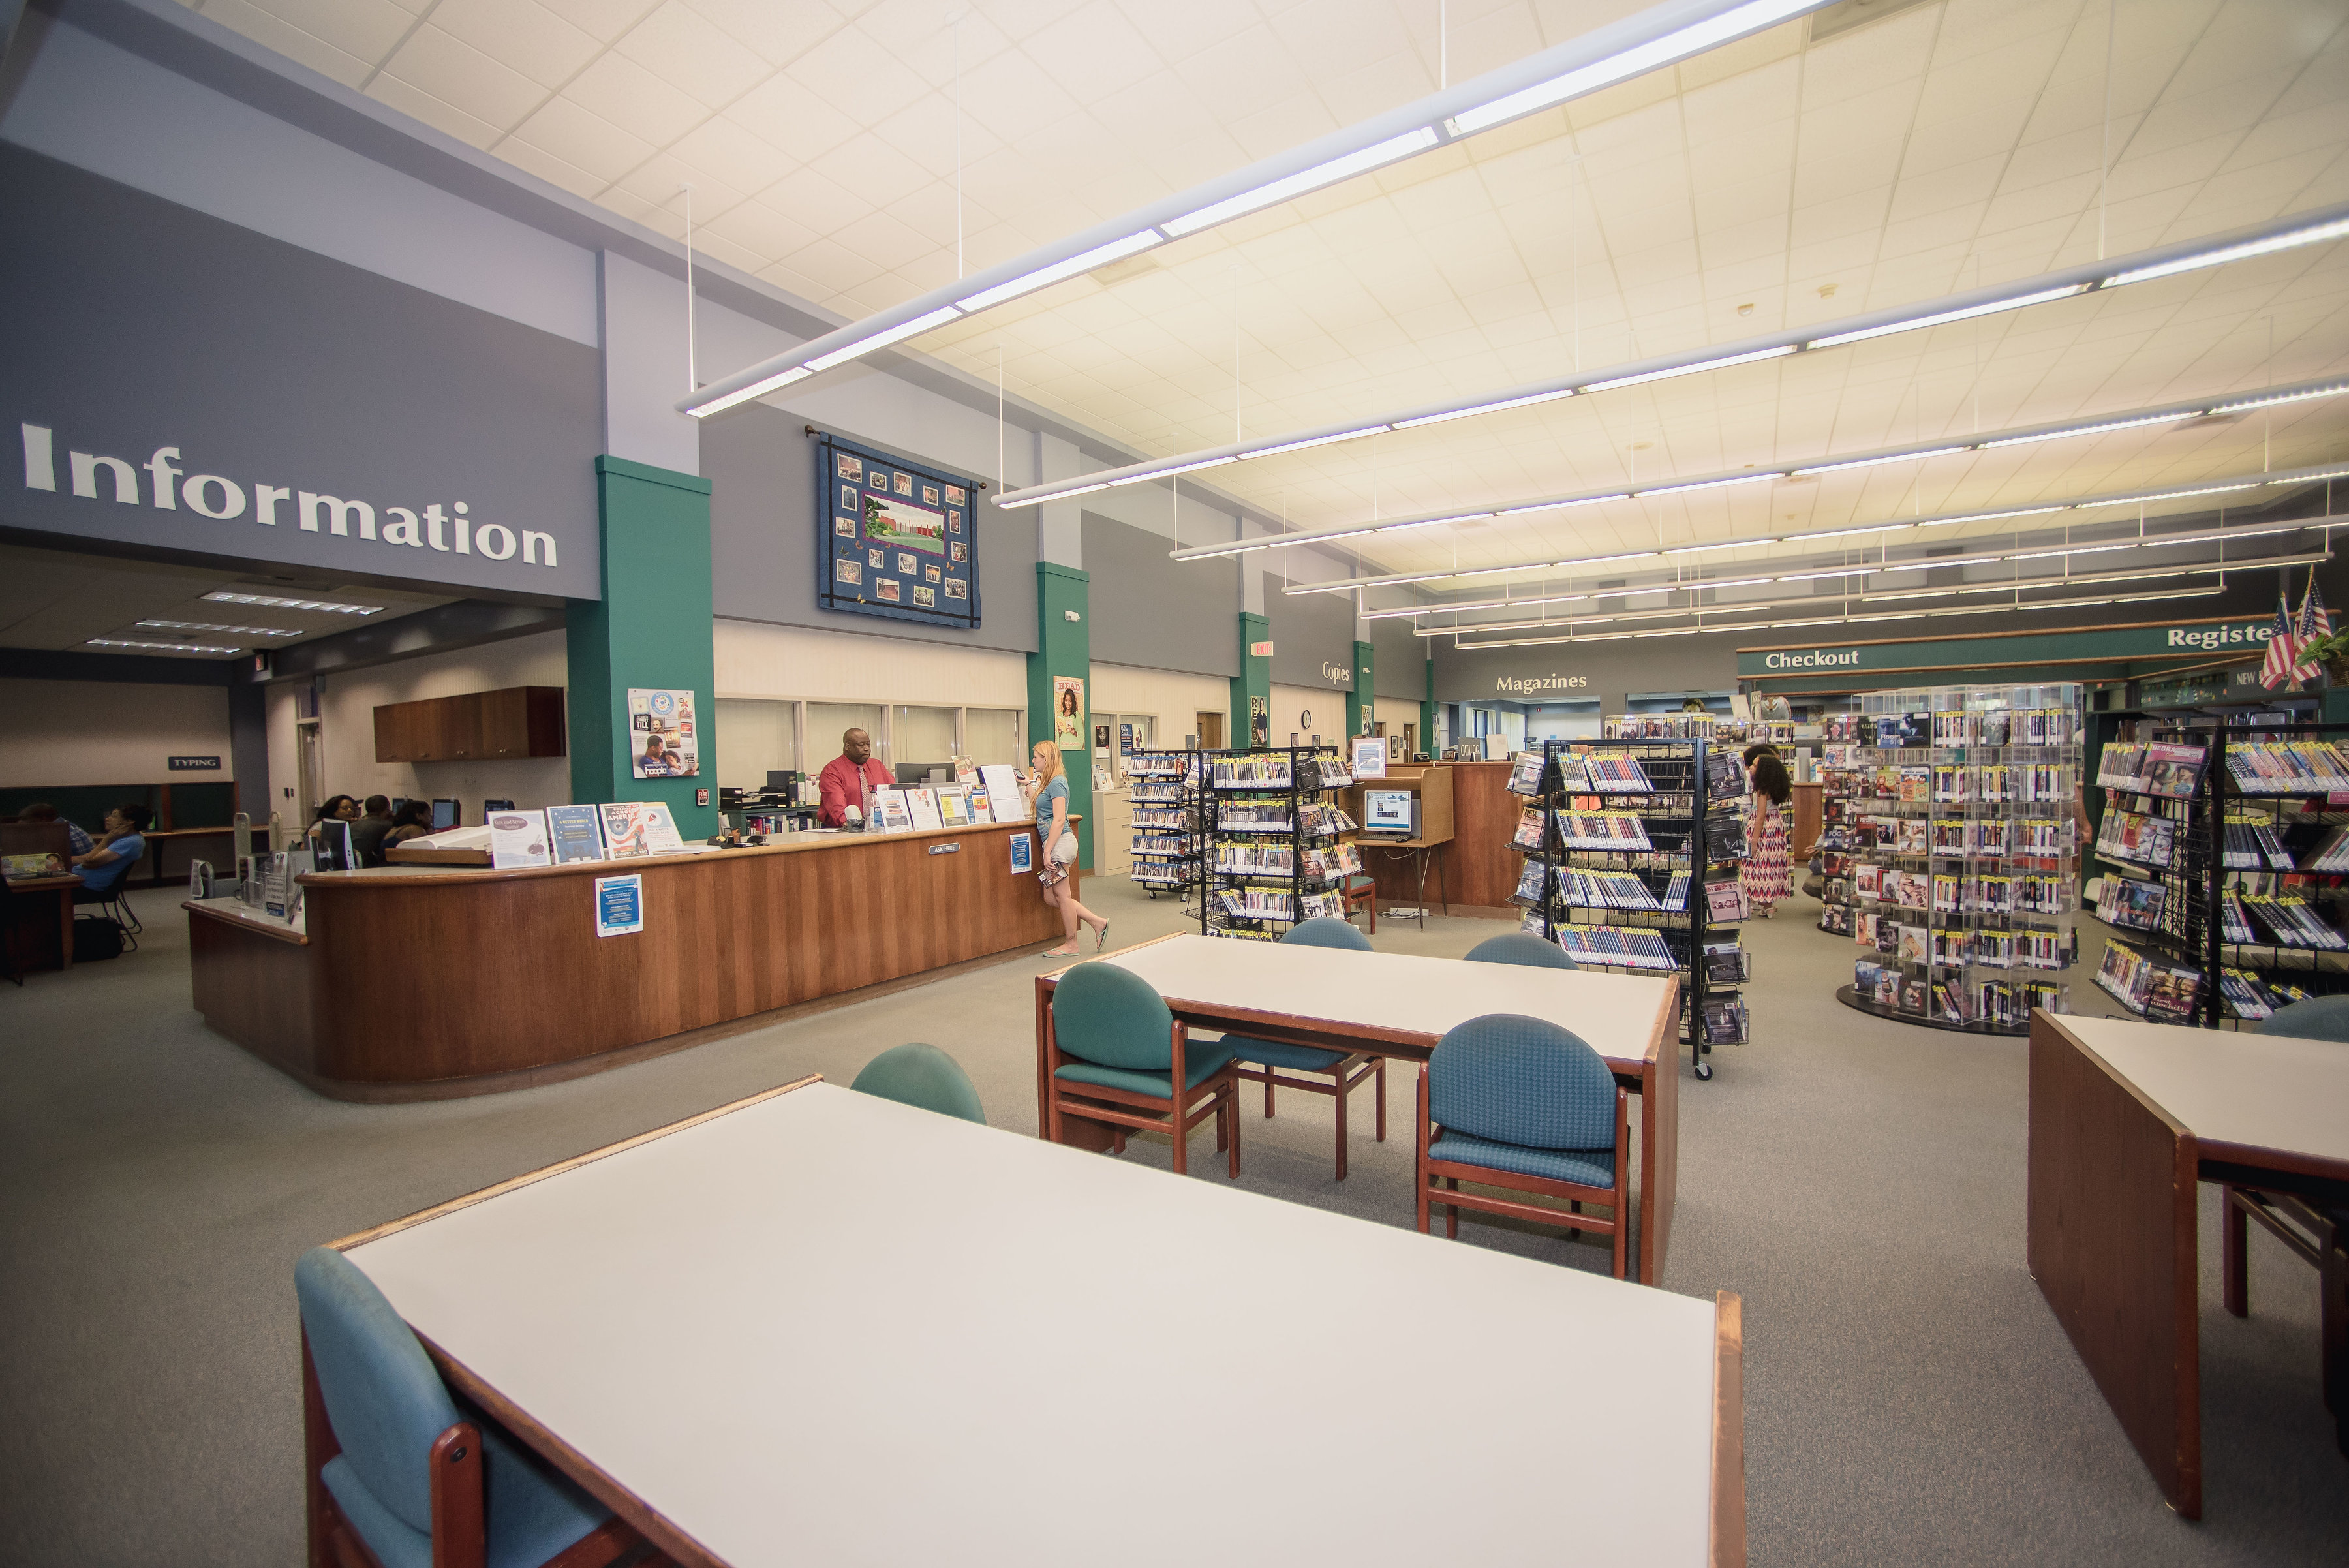 Employee of Dorchester Road Library tests positive for COVID-19